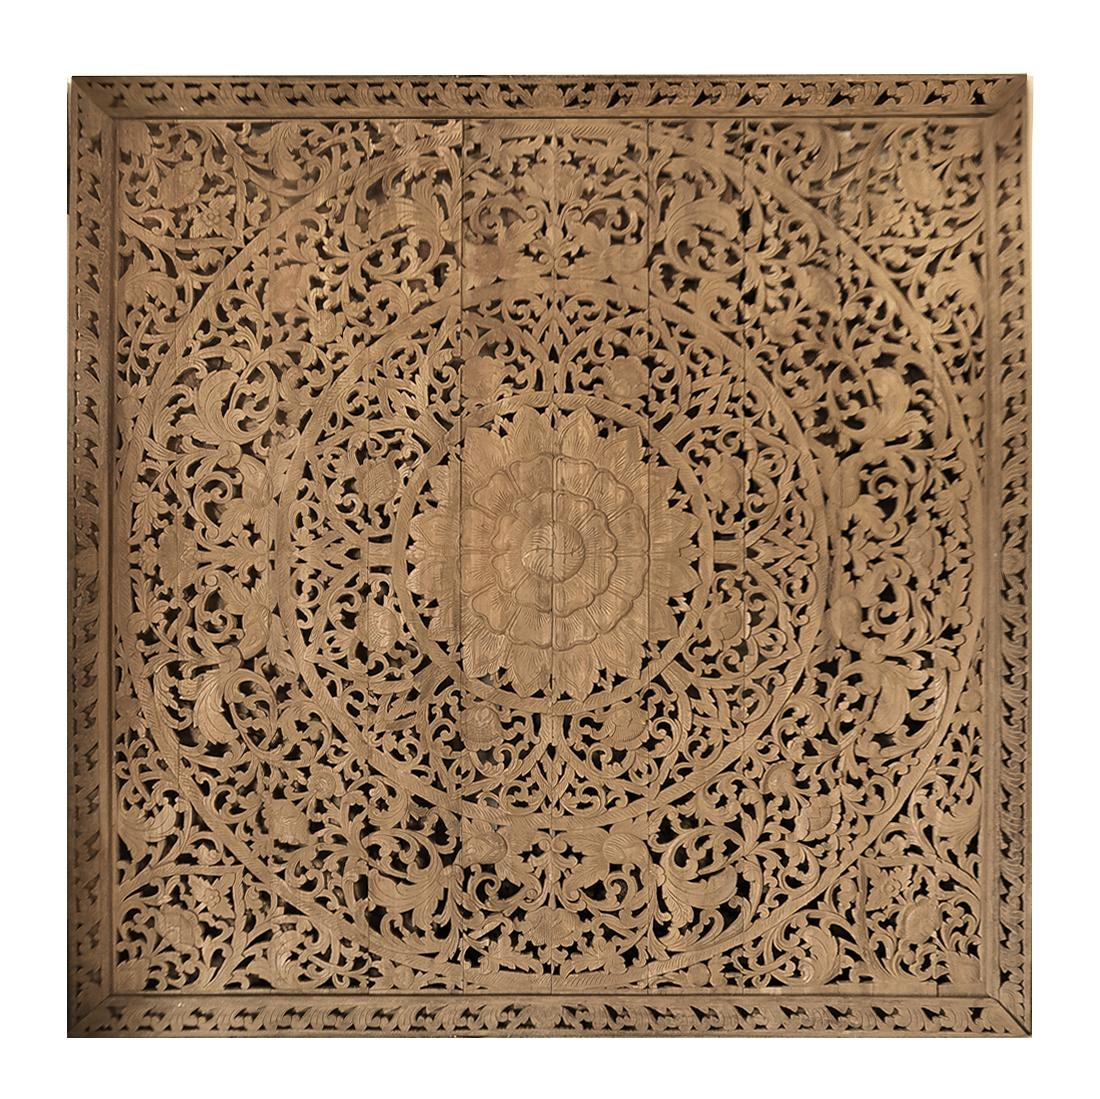 Large Grand Carved Wooden Wall Art Or Ceiling Panel – Siam Sawadee Regarding Wood Panel Wall Art (View 6 of 20)